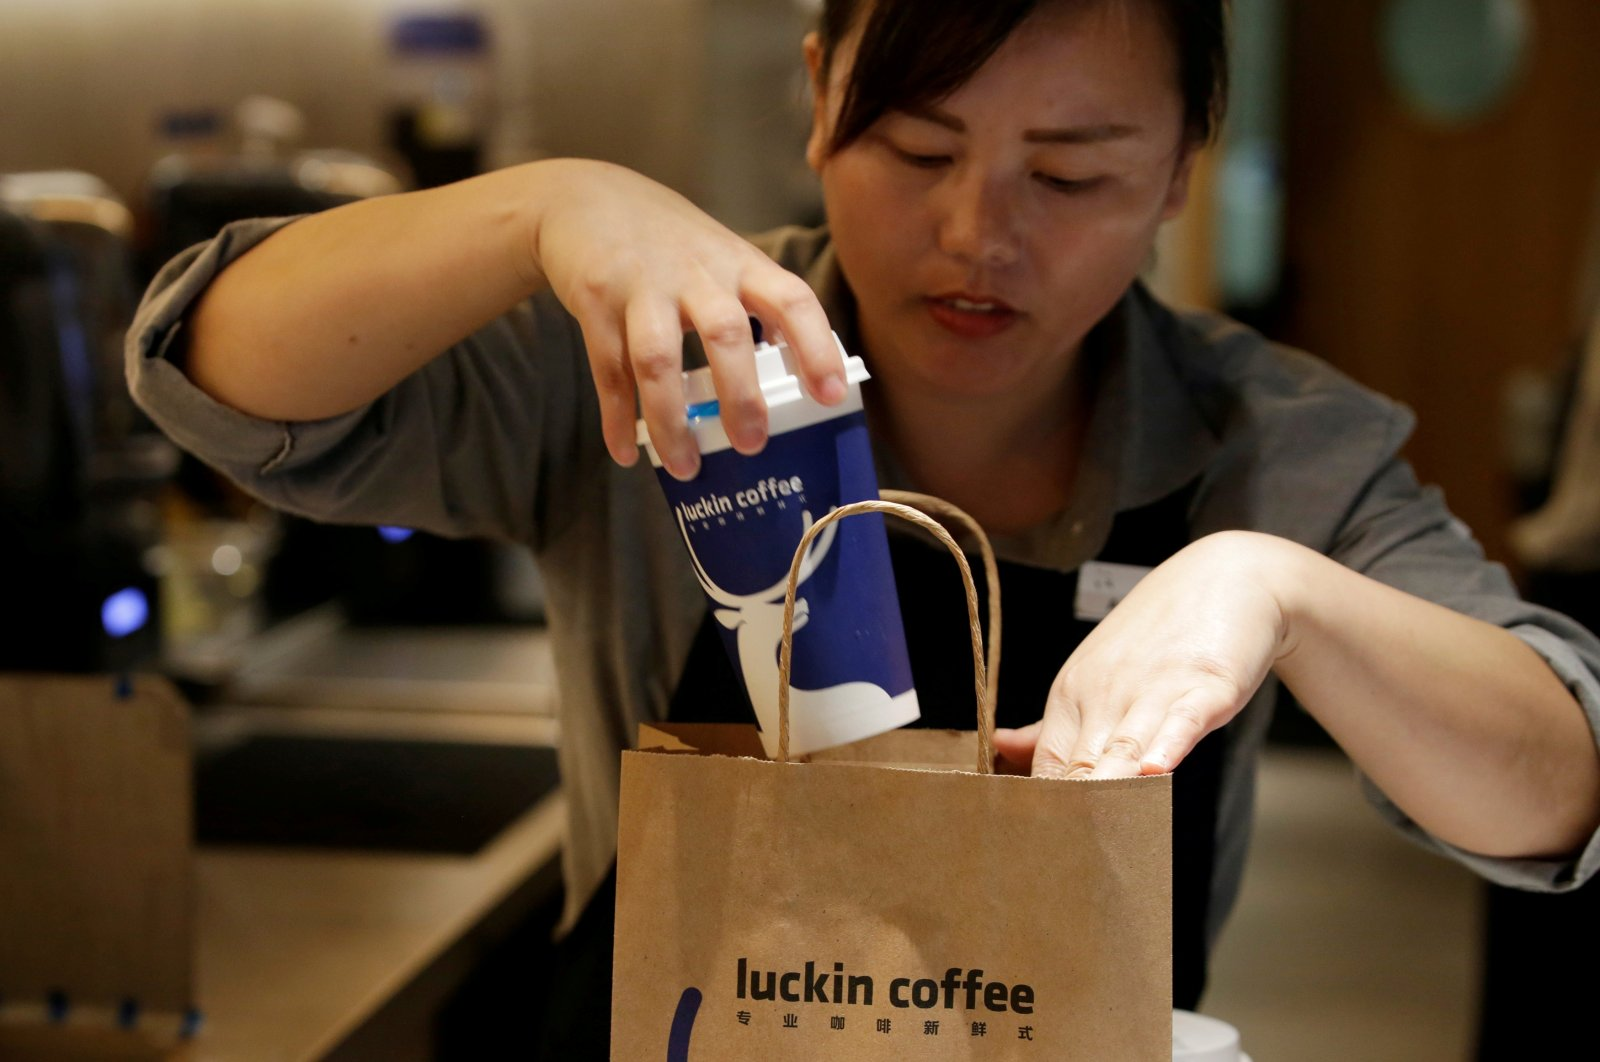 A barista packs a coffee at a Luckin Coffee shop in Beijing, China, July 17, 2018. (Reuters Photo)